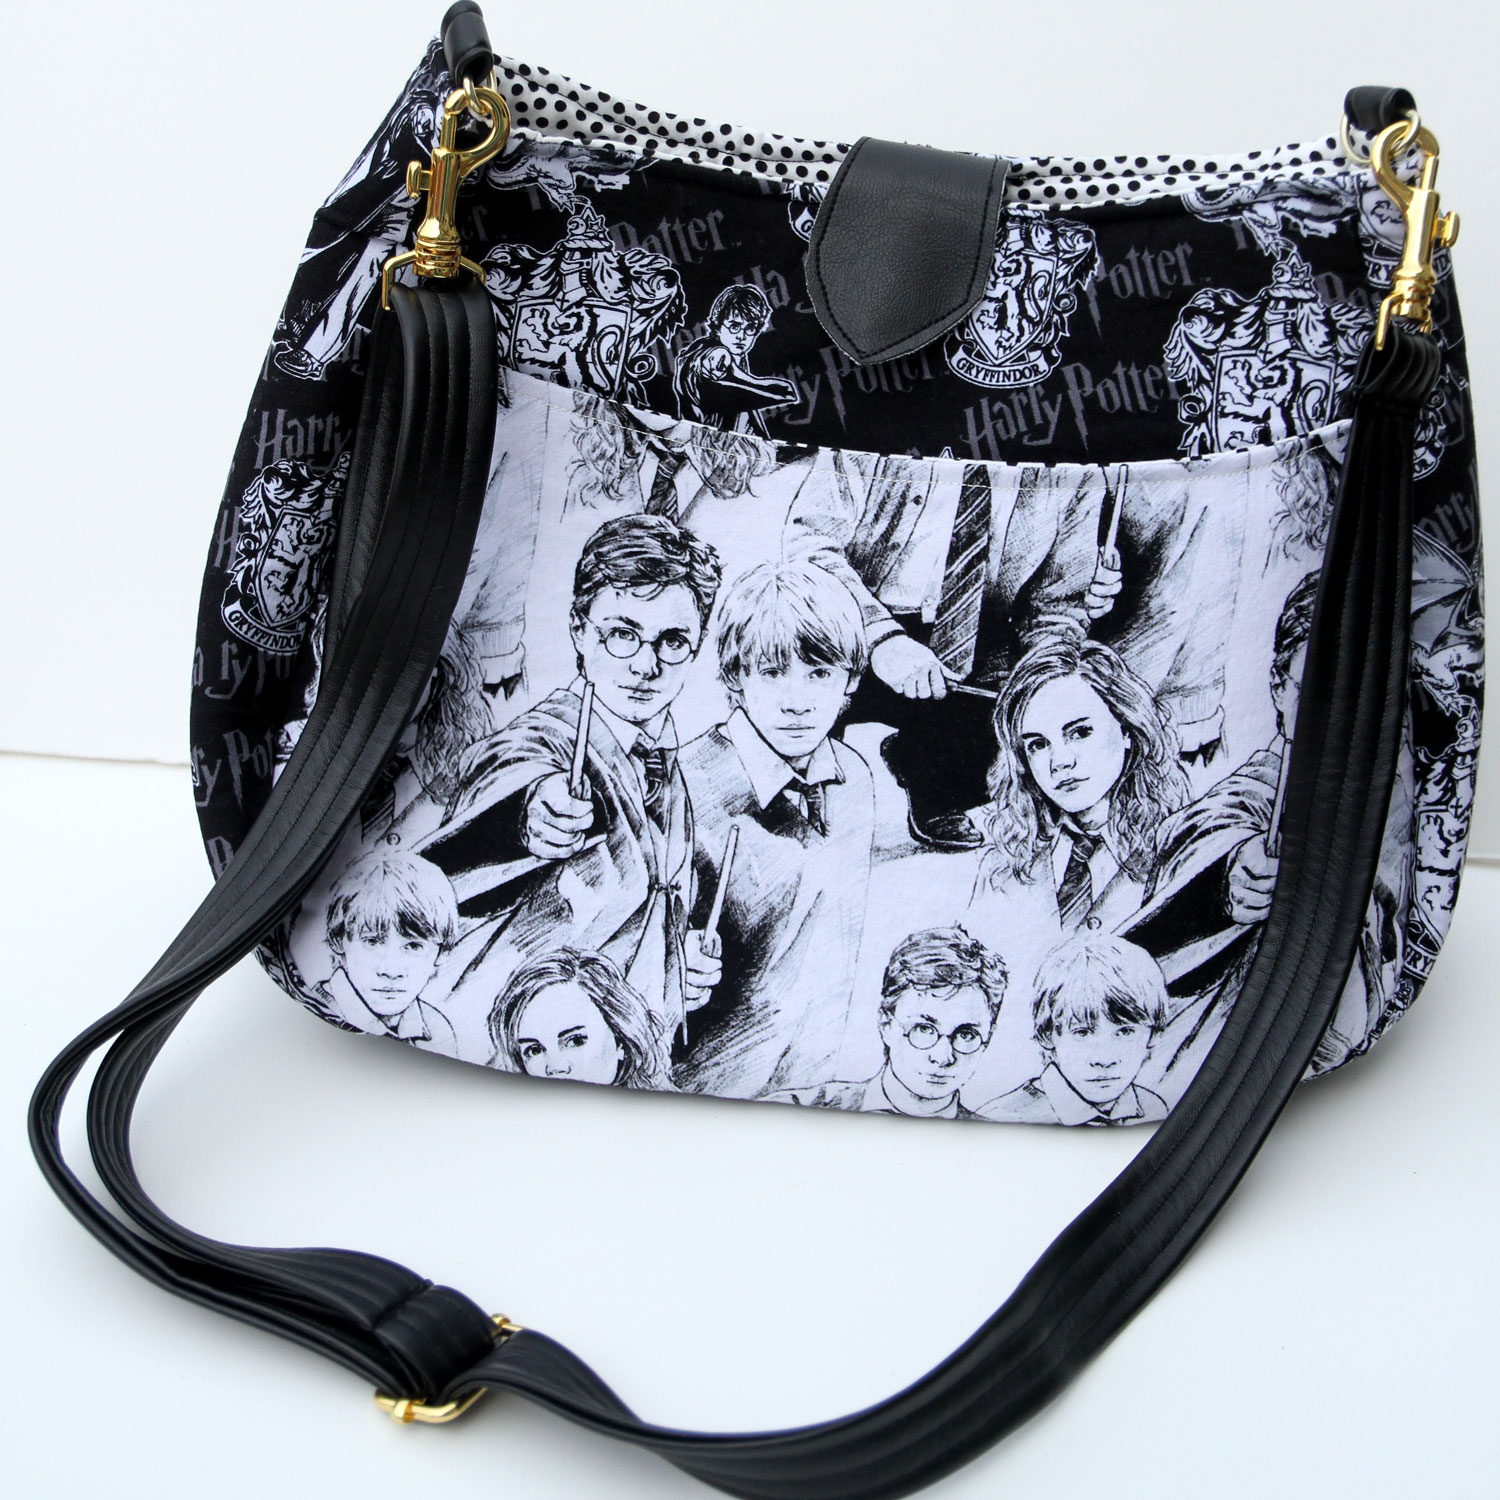 Cross Body Harry Potter Purse with Strap Closure - For the woman who needs to carry more than the essentials for her muggles, this purse has an easy access outer pocket and a roomy interior that closes with a magnet snap. (Other styles available as well)